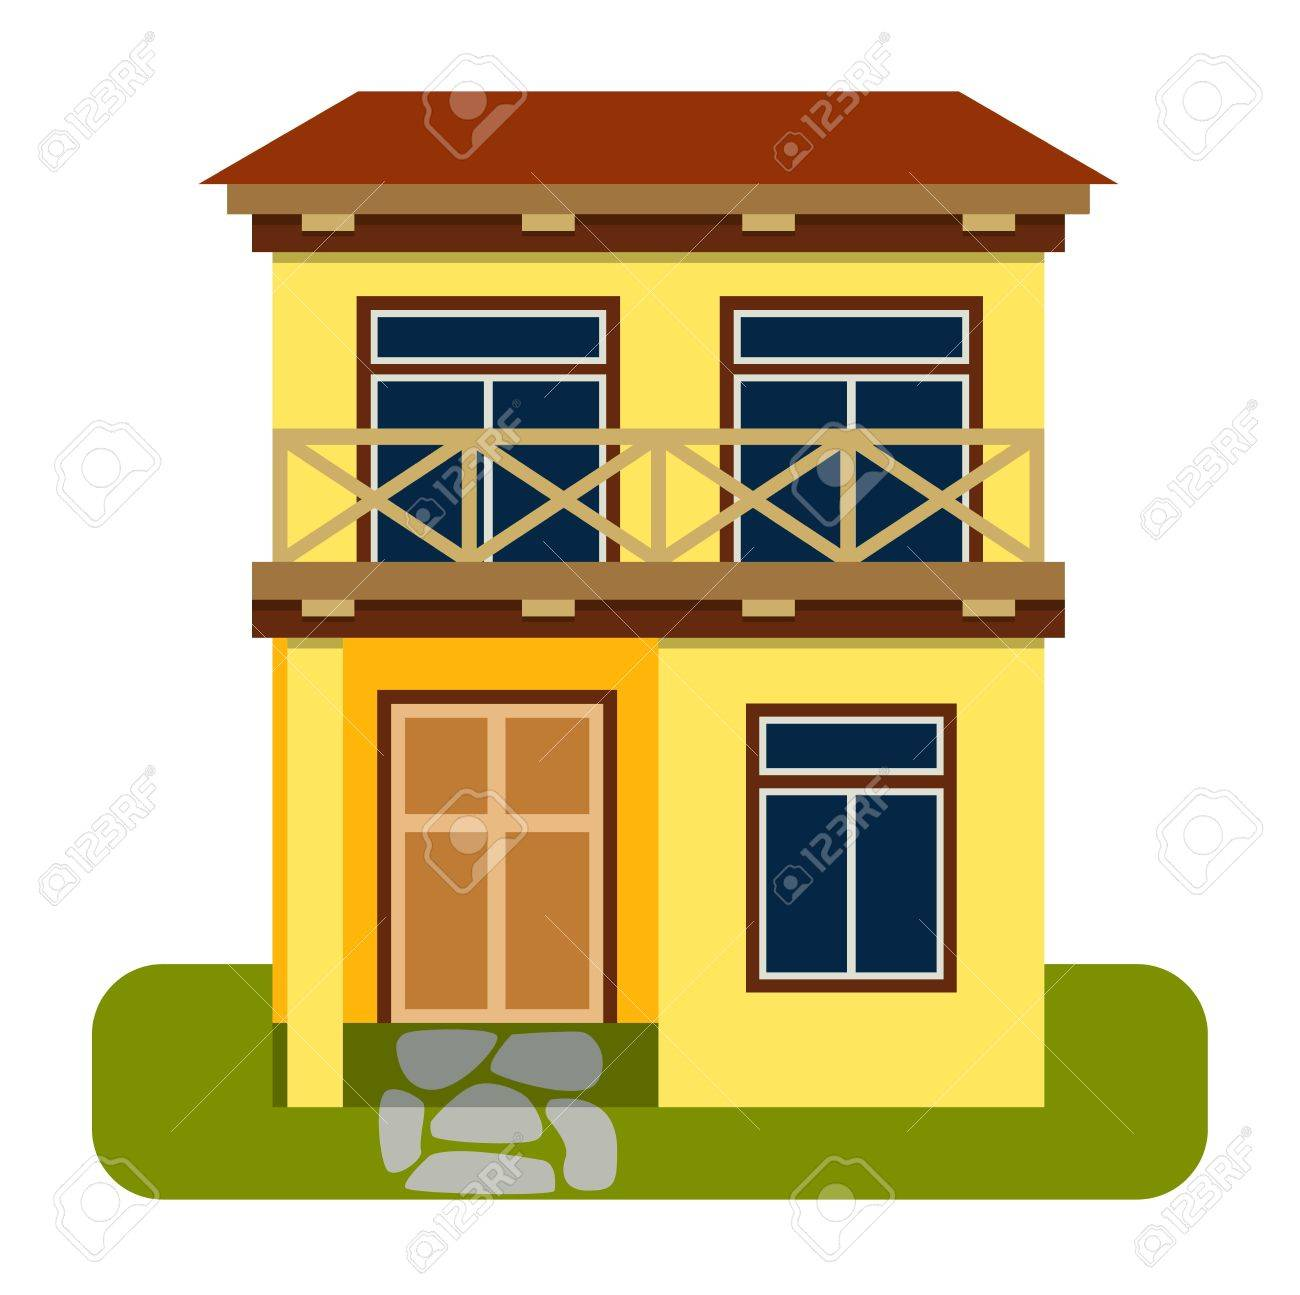 House front view vector illustration house flat style modern constructions vector house front facade